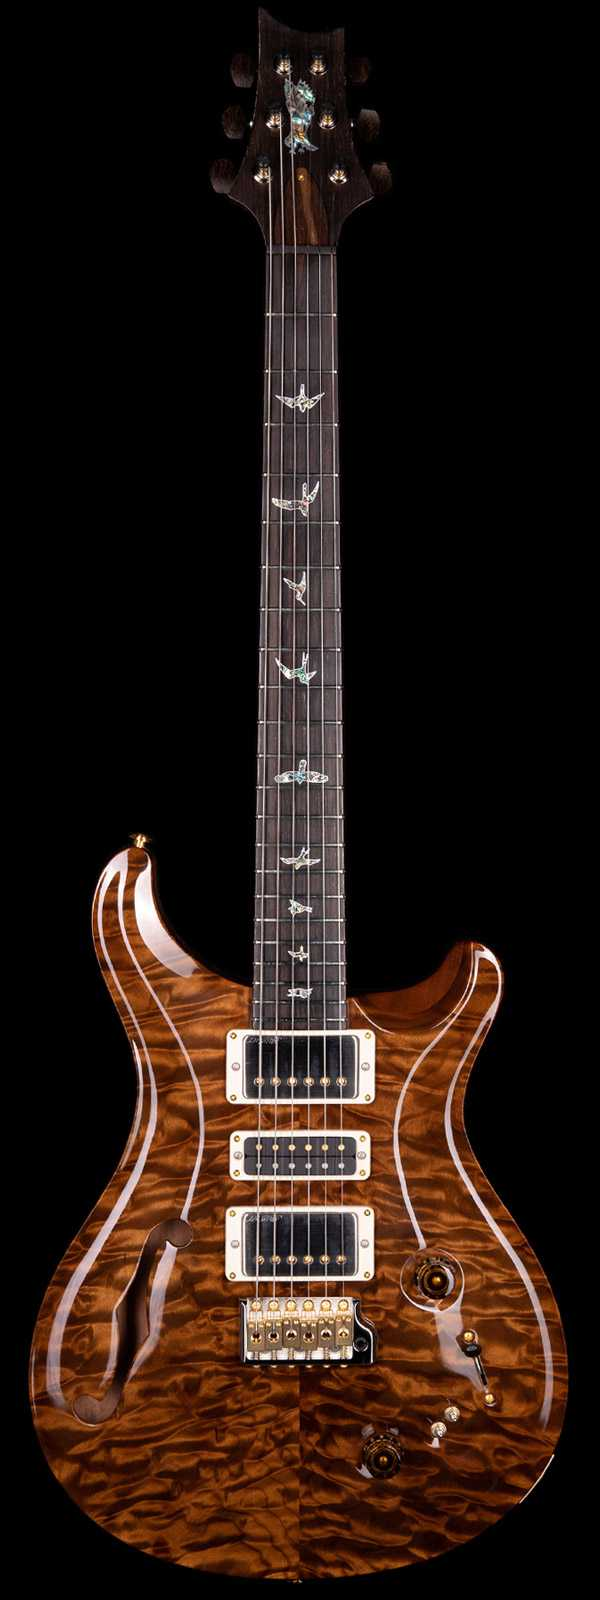 PRS Private Stock 8520 Special Semi-Hollow w/ F-Hole Roasted Quilt Top Brazilian Fretboard Natural Finish